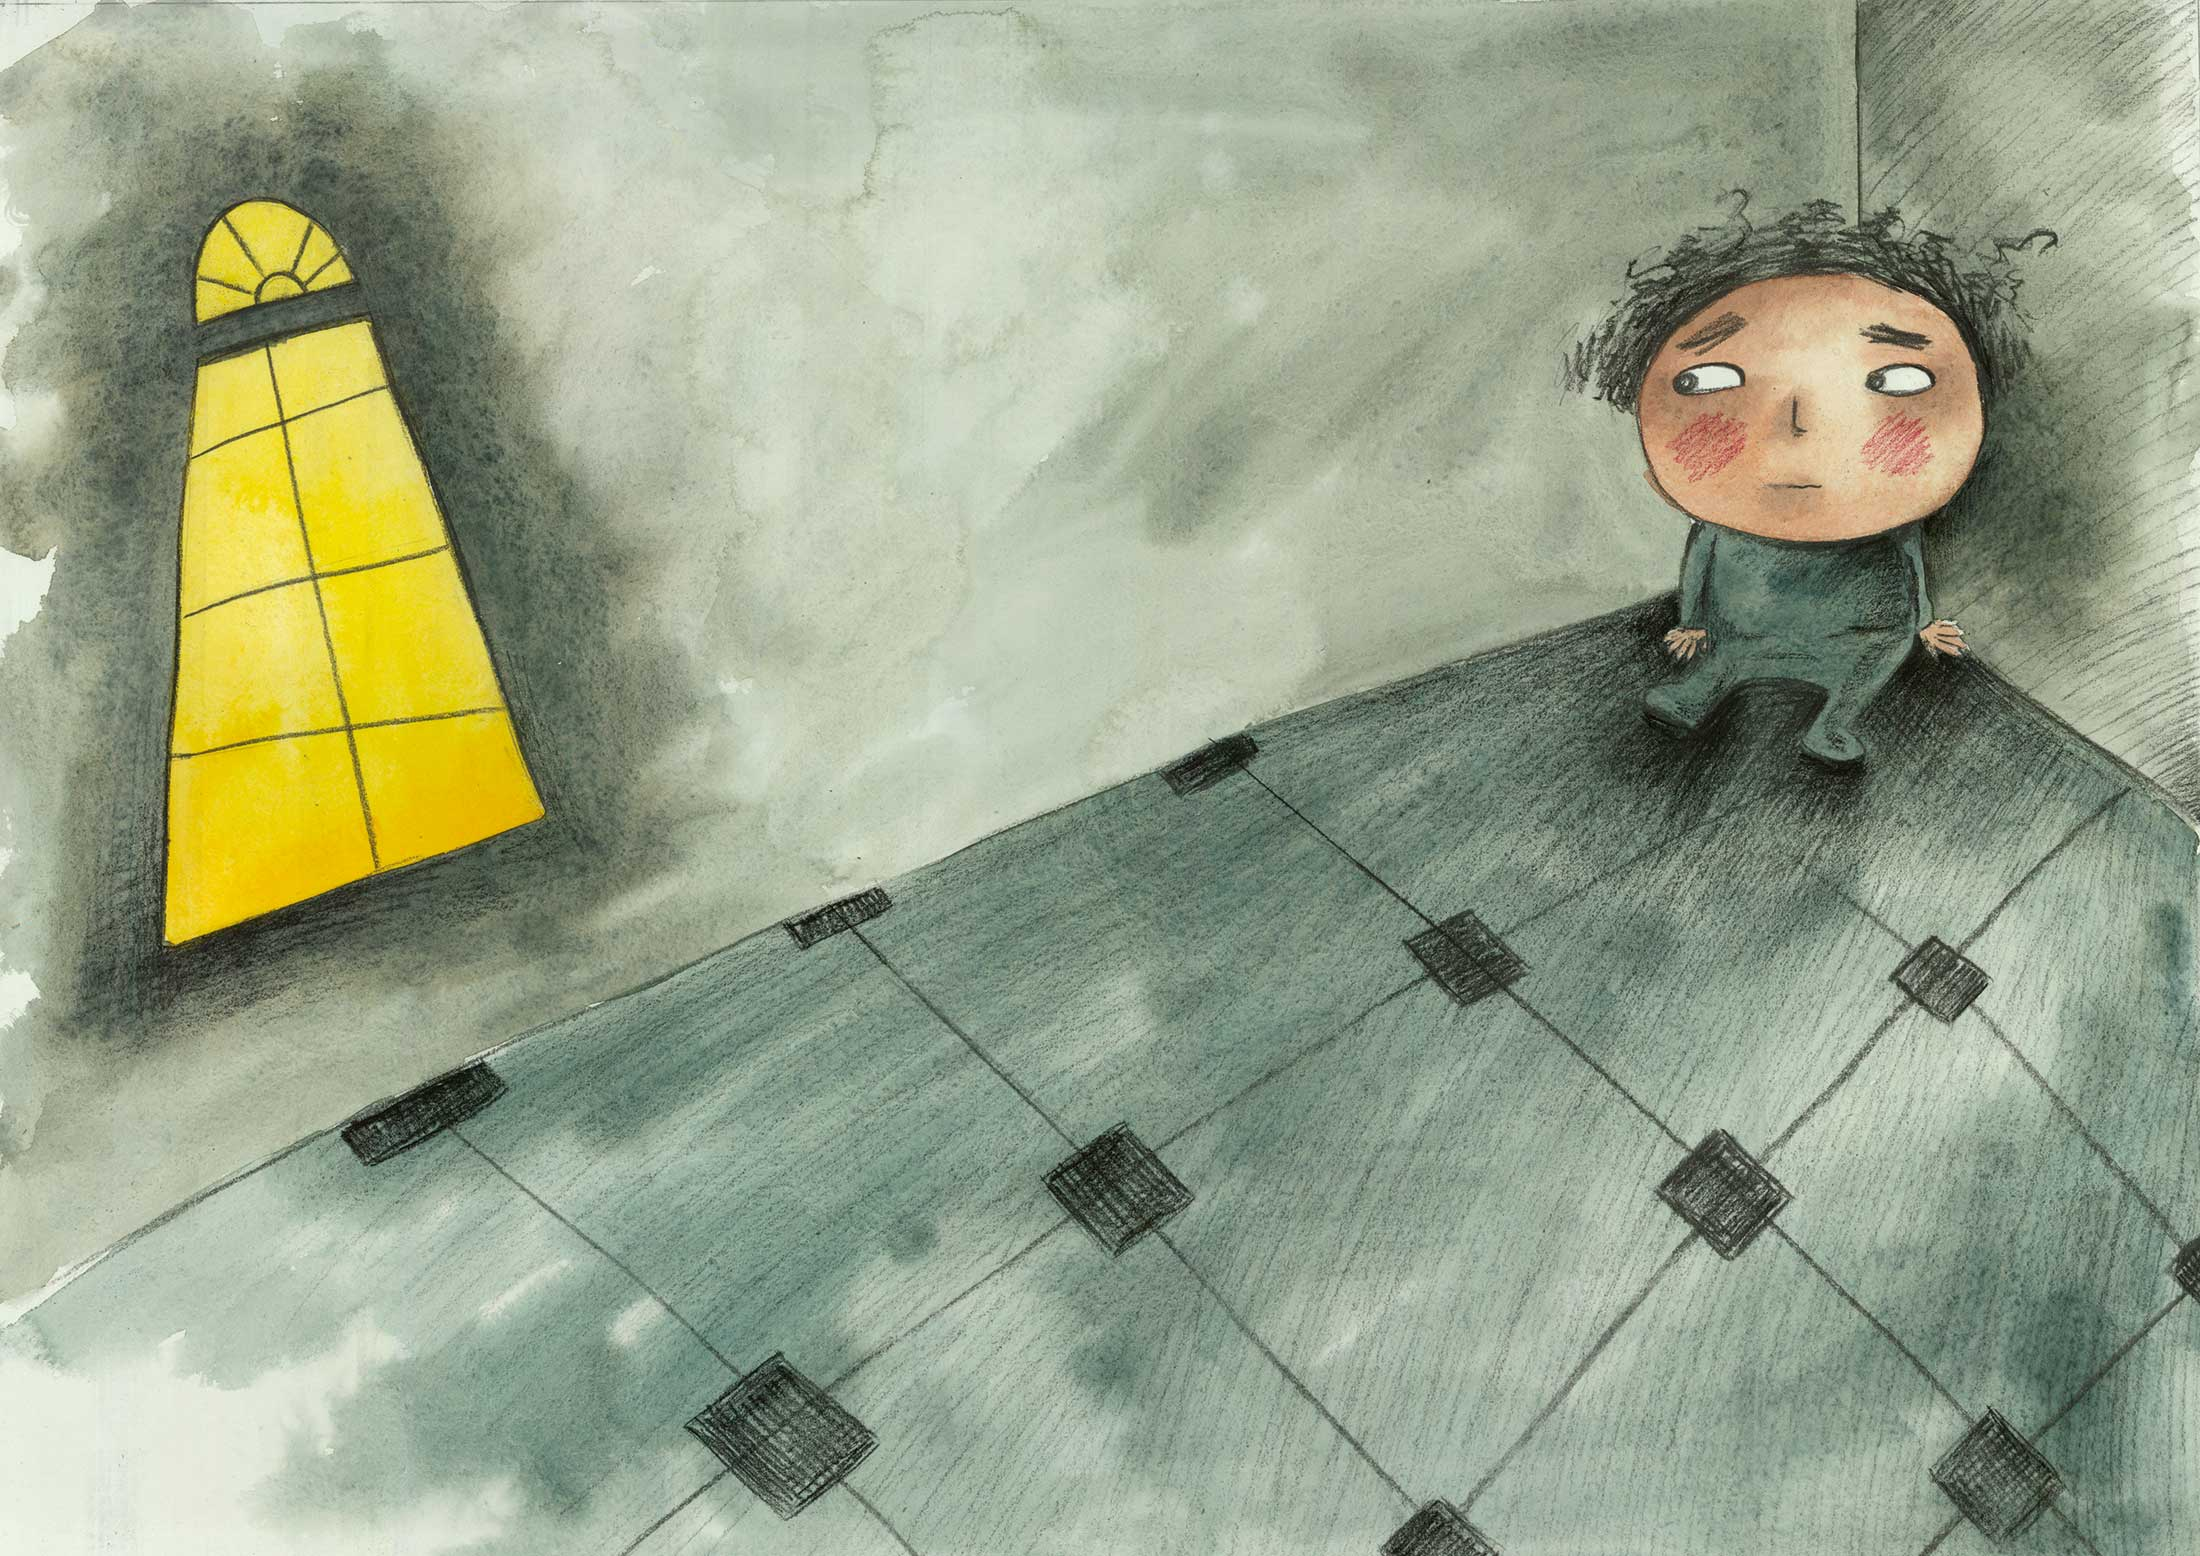 From Tomorrow, Nadine's most recent picture book about a Syrian boy struggling to make sense of his country's conflict.